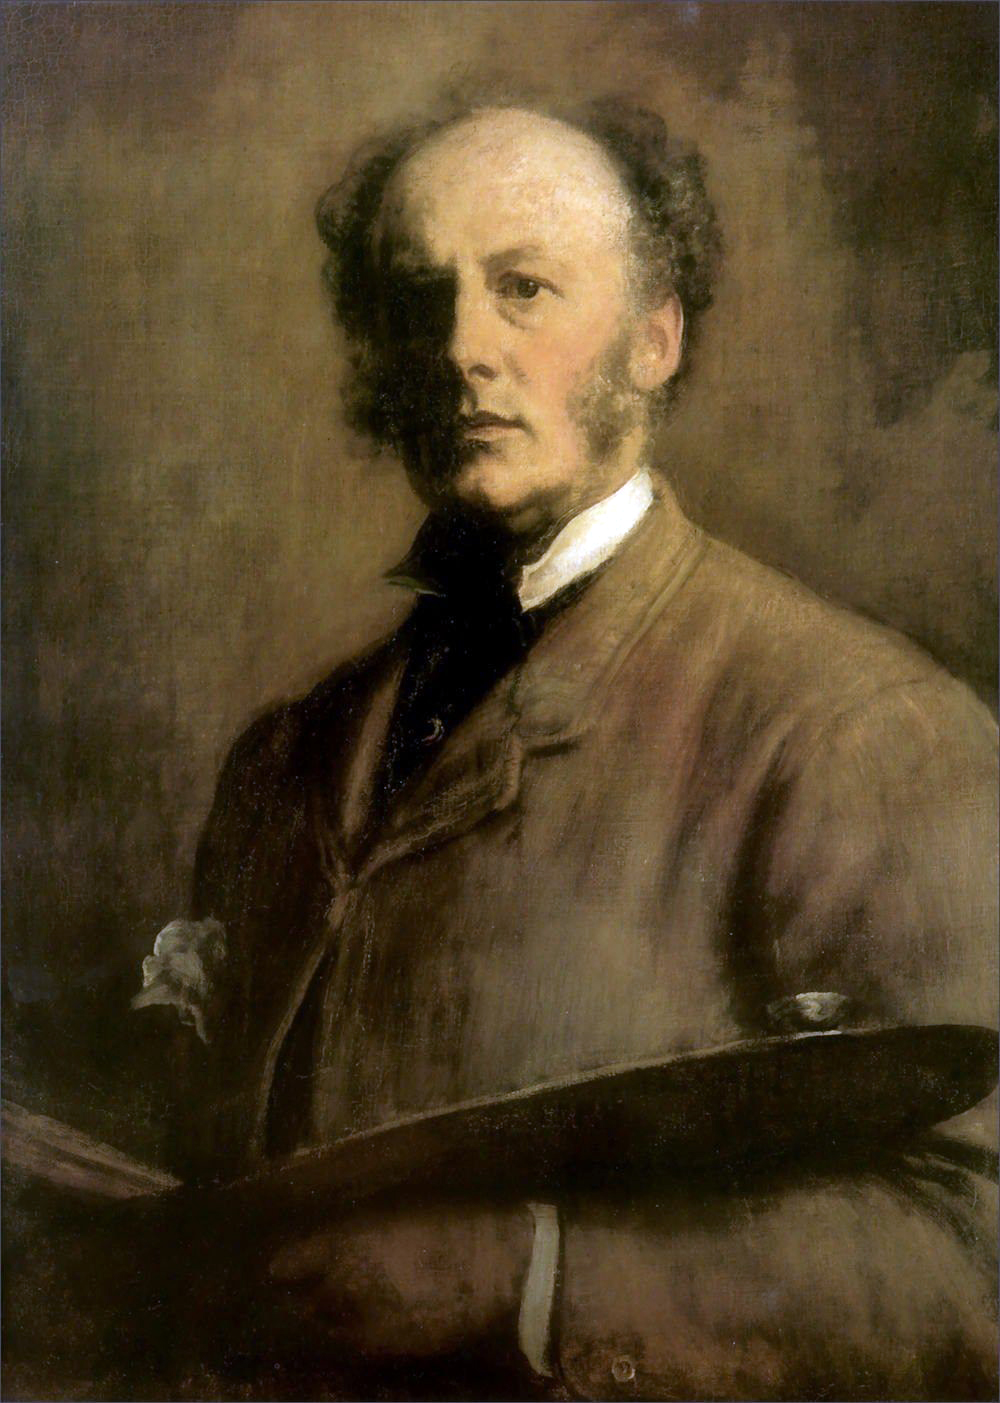 http://upload.wikimedia.org/wikipedia/commons/1/14/Millais_-_Self-Portrait.jpg